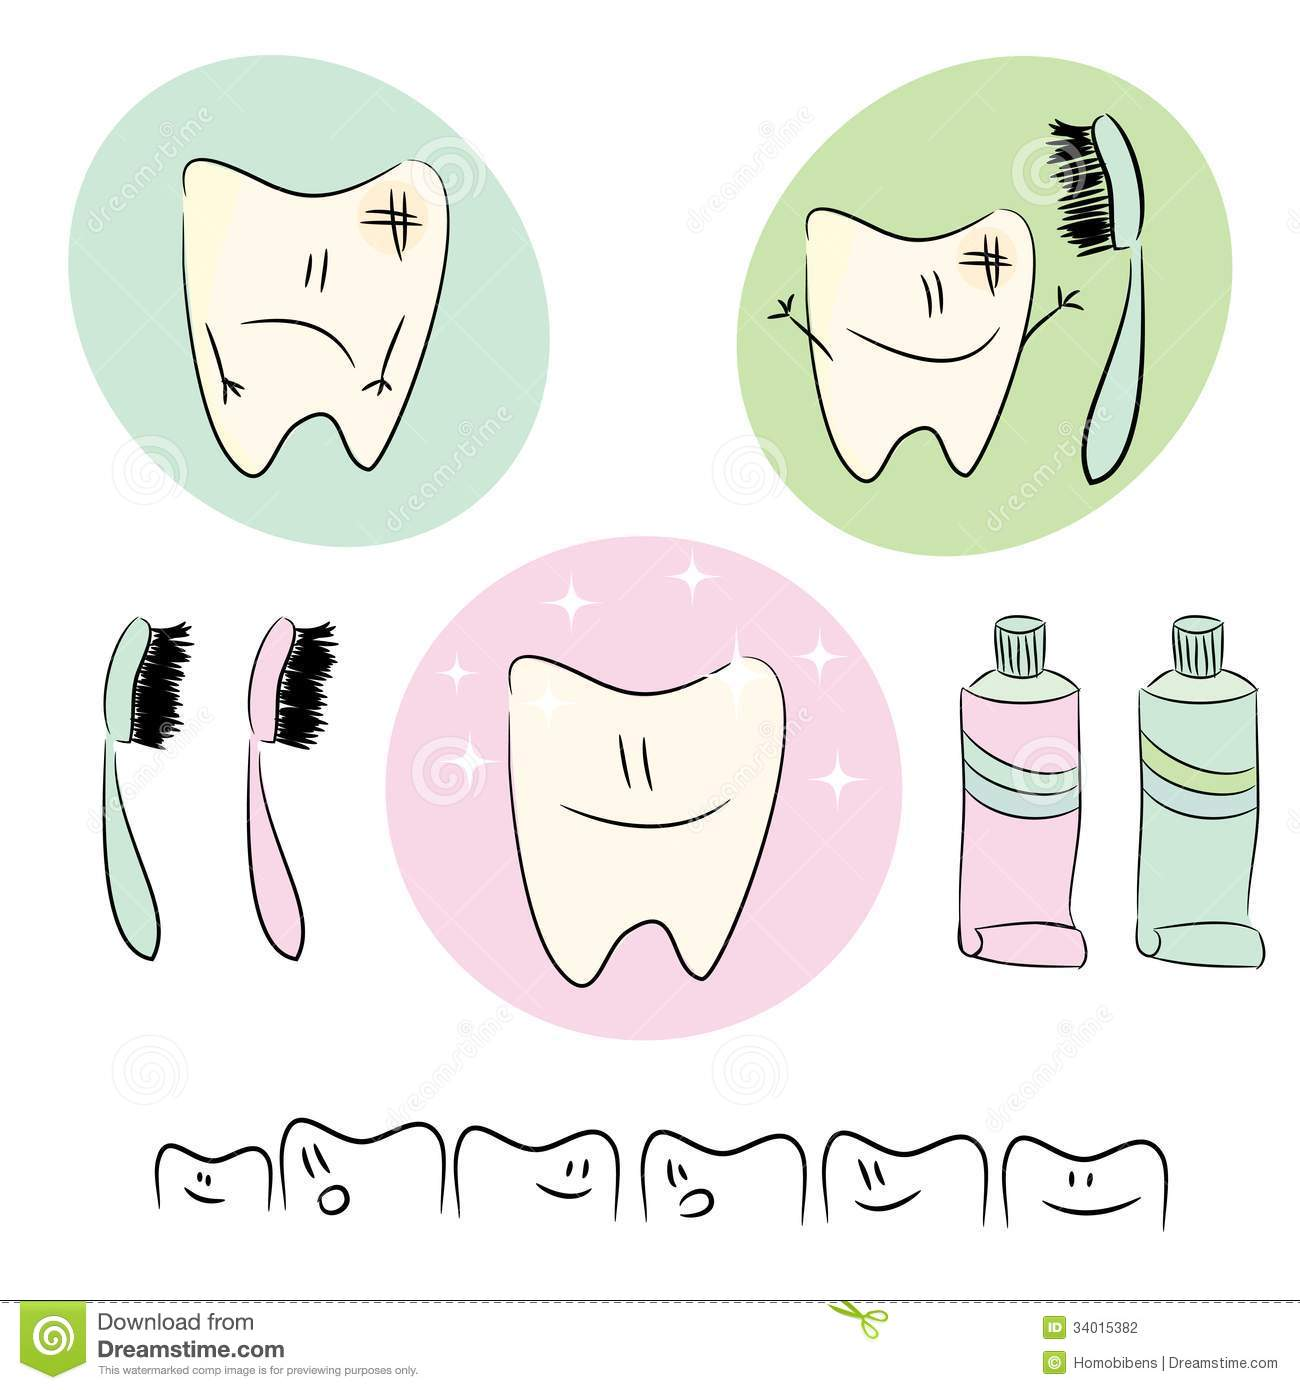 Icons, illustrations on the theme of dental care f